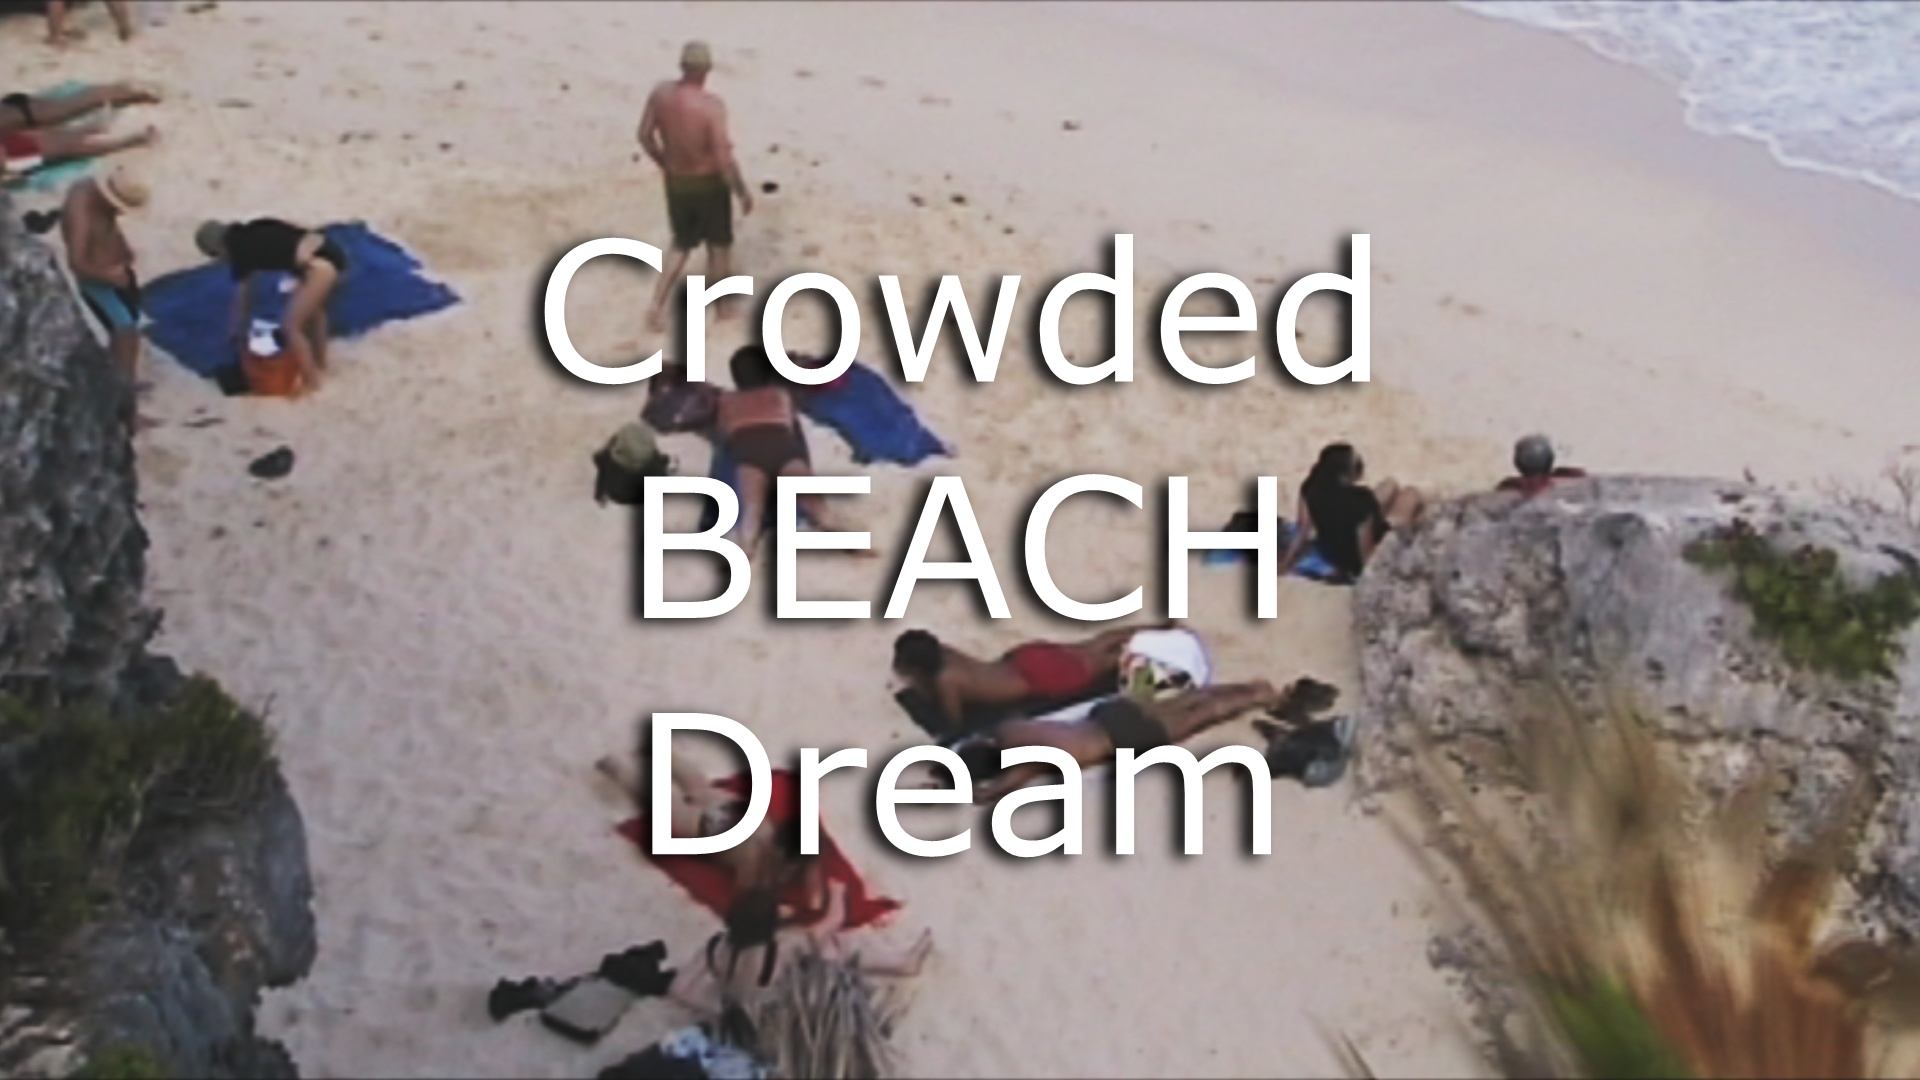 crowded beach dream meaning